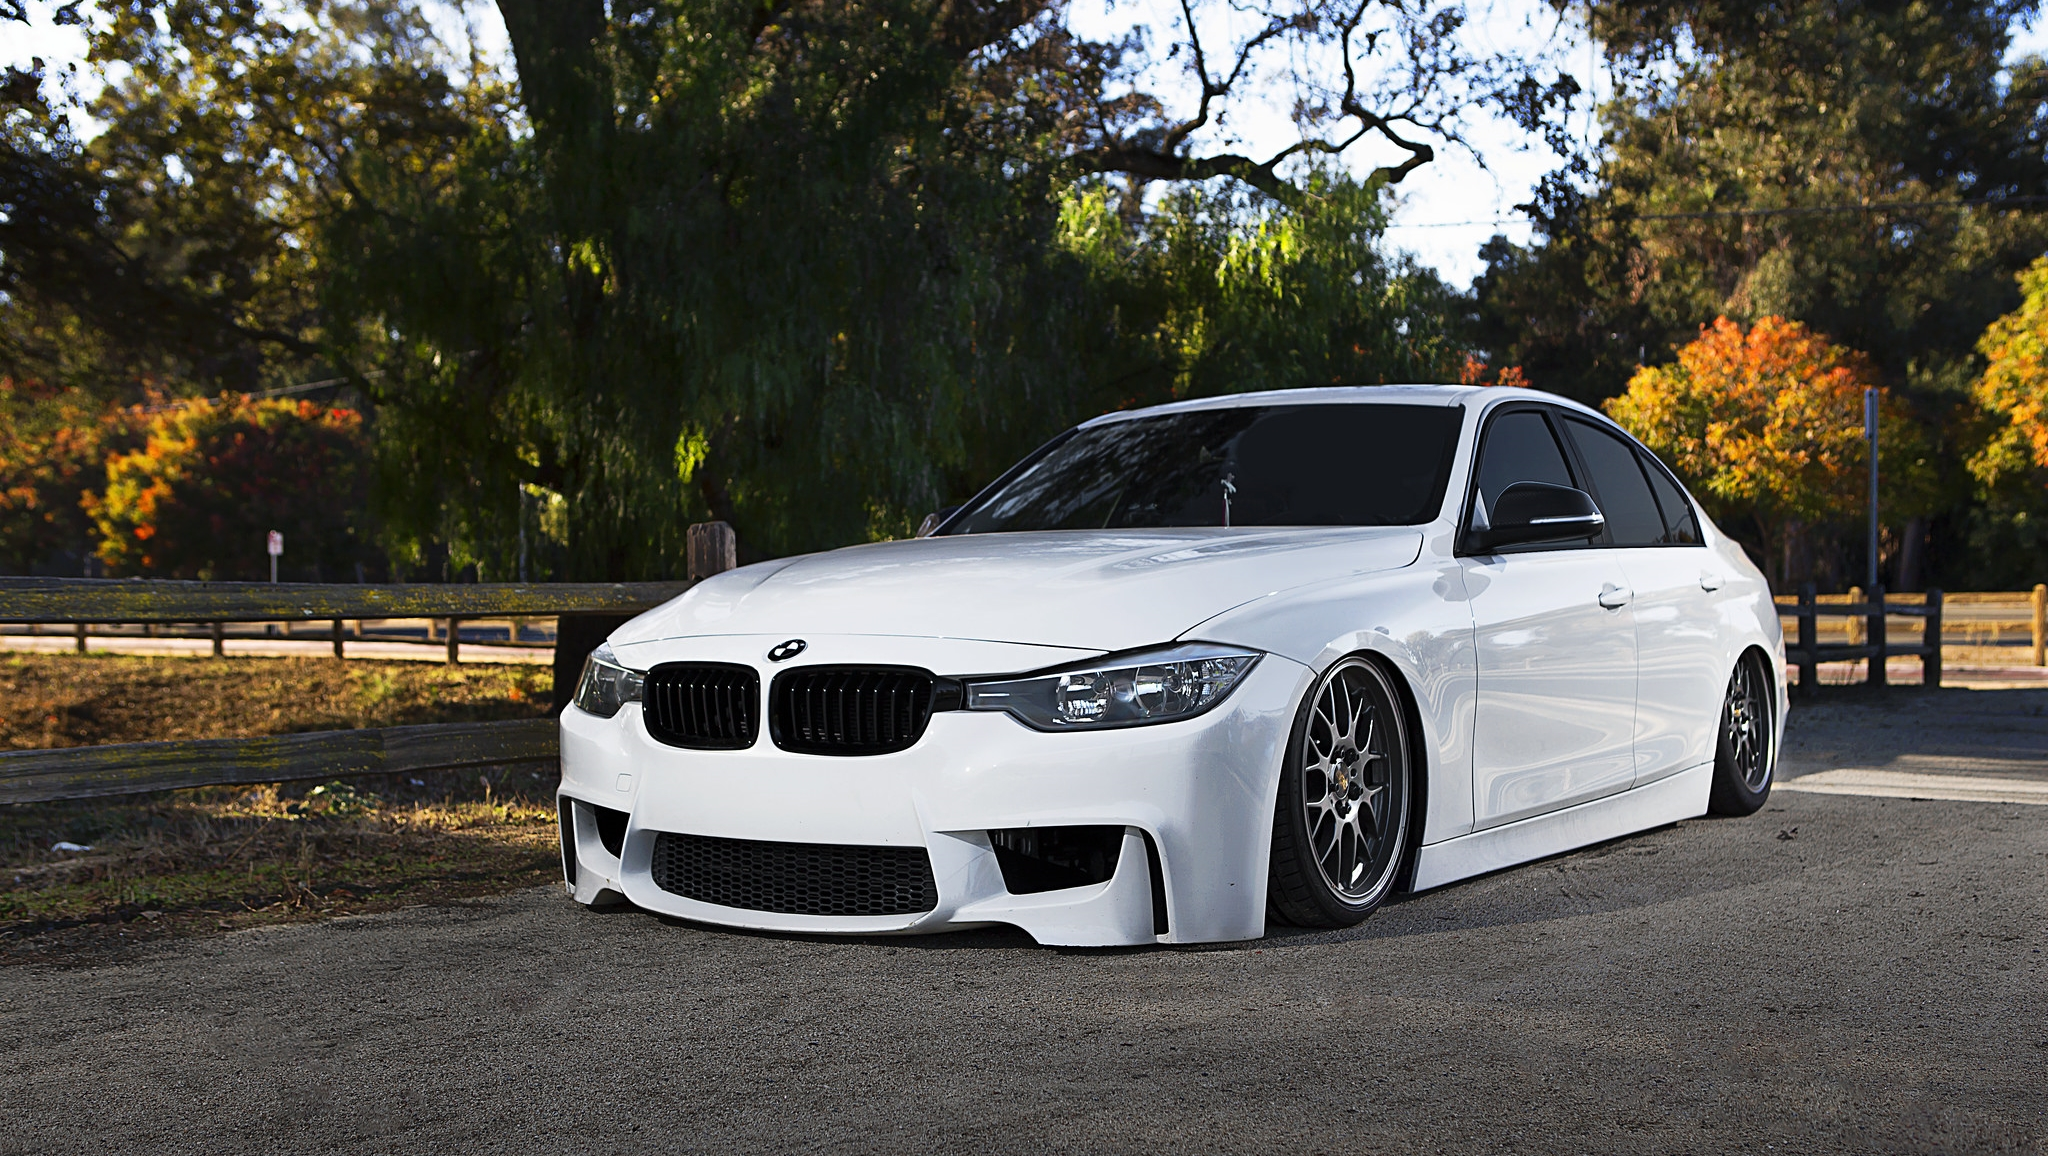 New Performance Air Suspension For Bmw F30 3 Series By Air